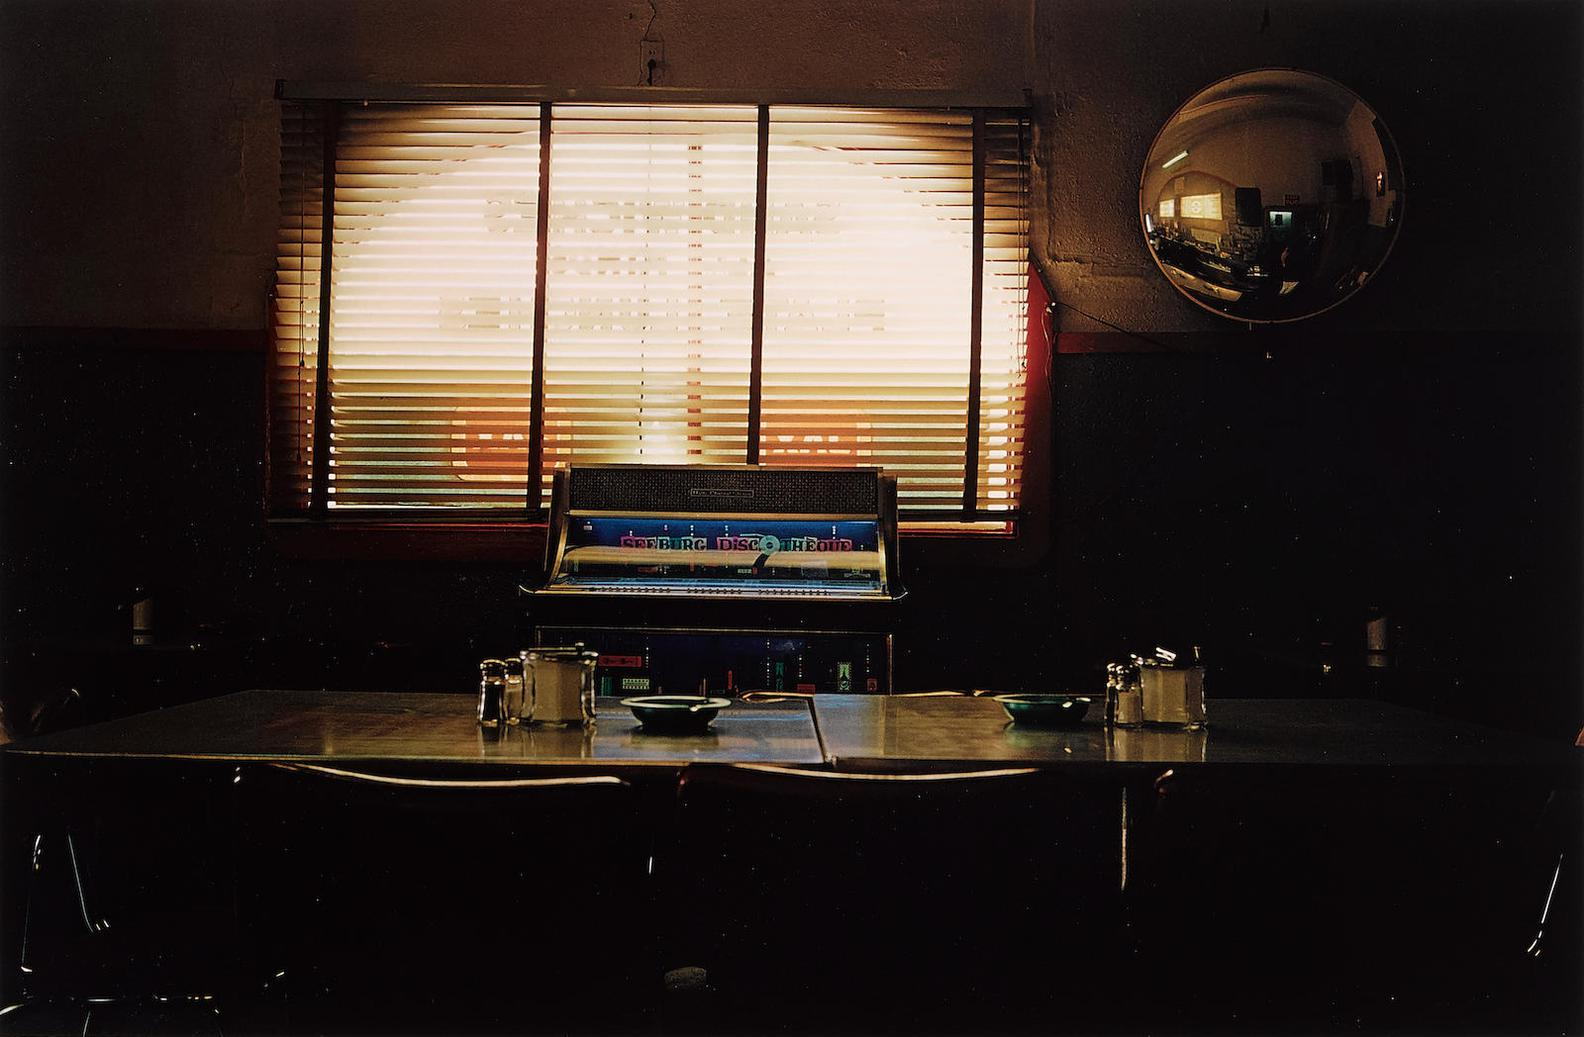 William Eggleston-Untitled (Table And Jukebox) From Troubled Waters-1980